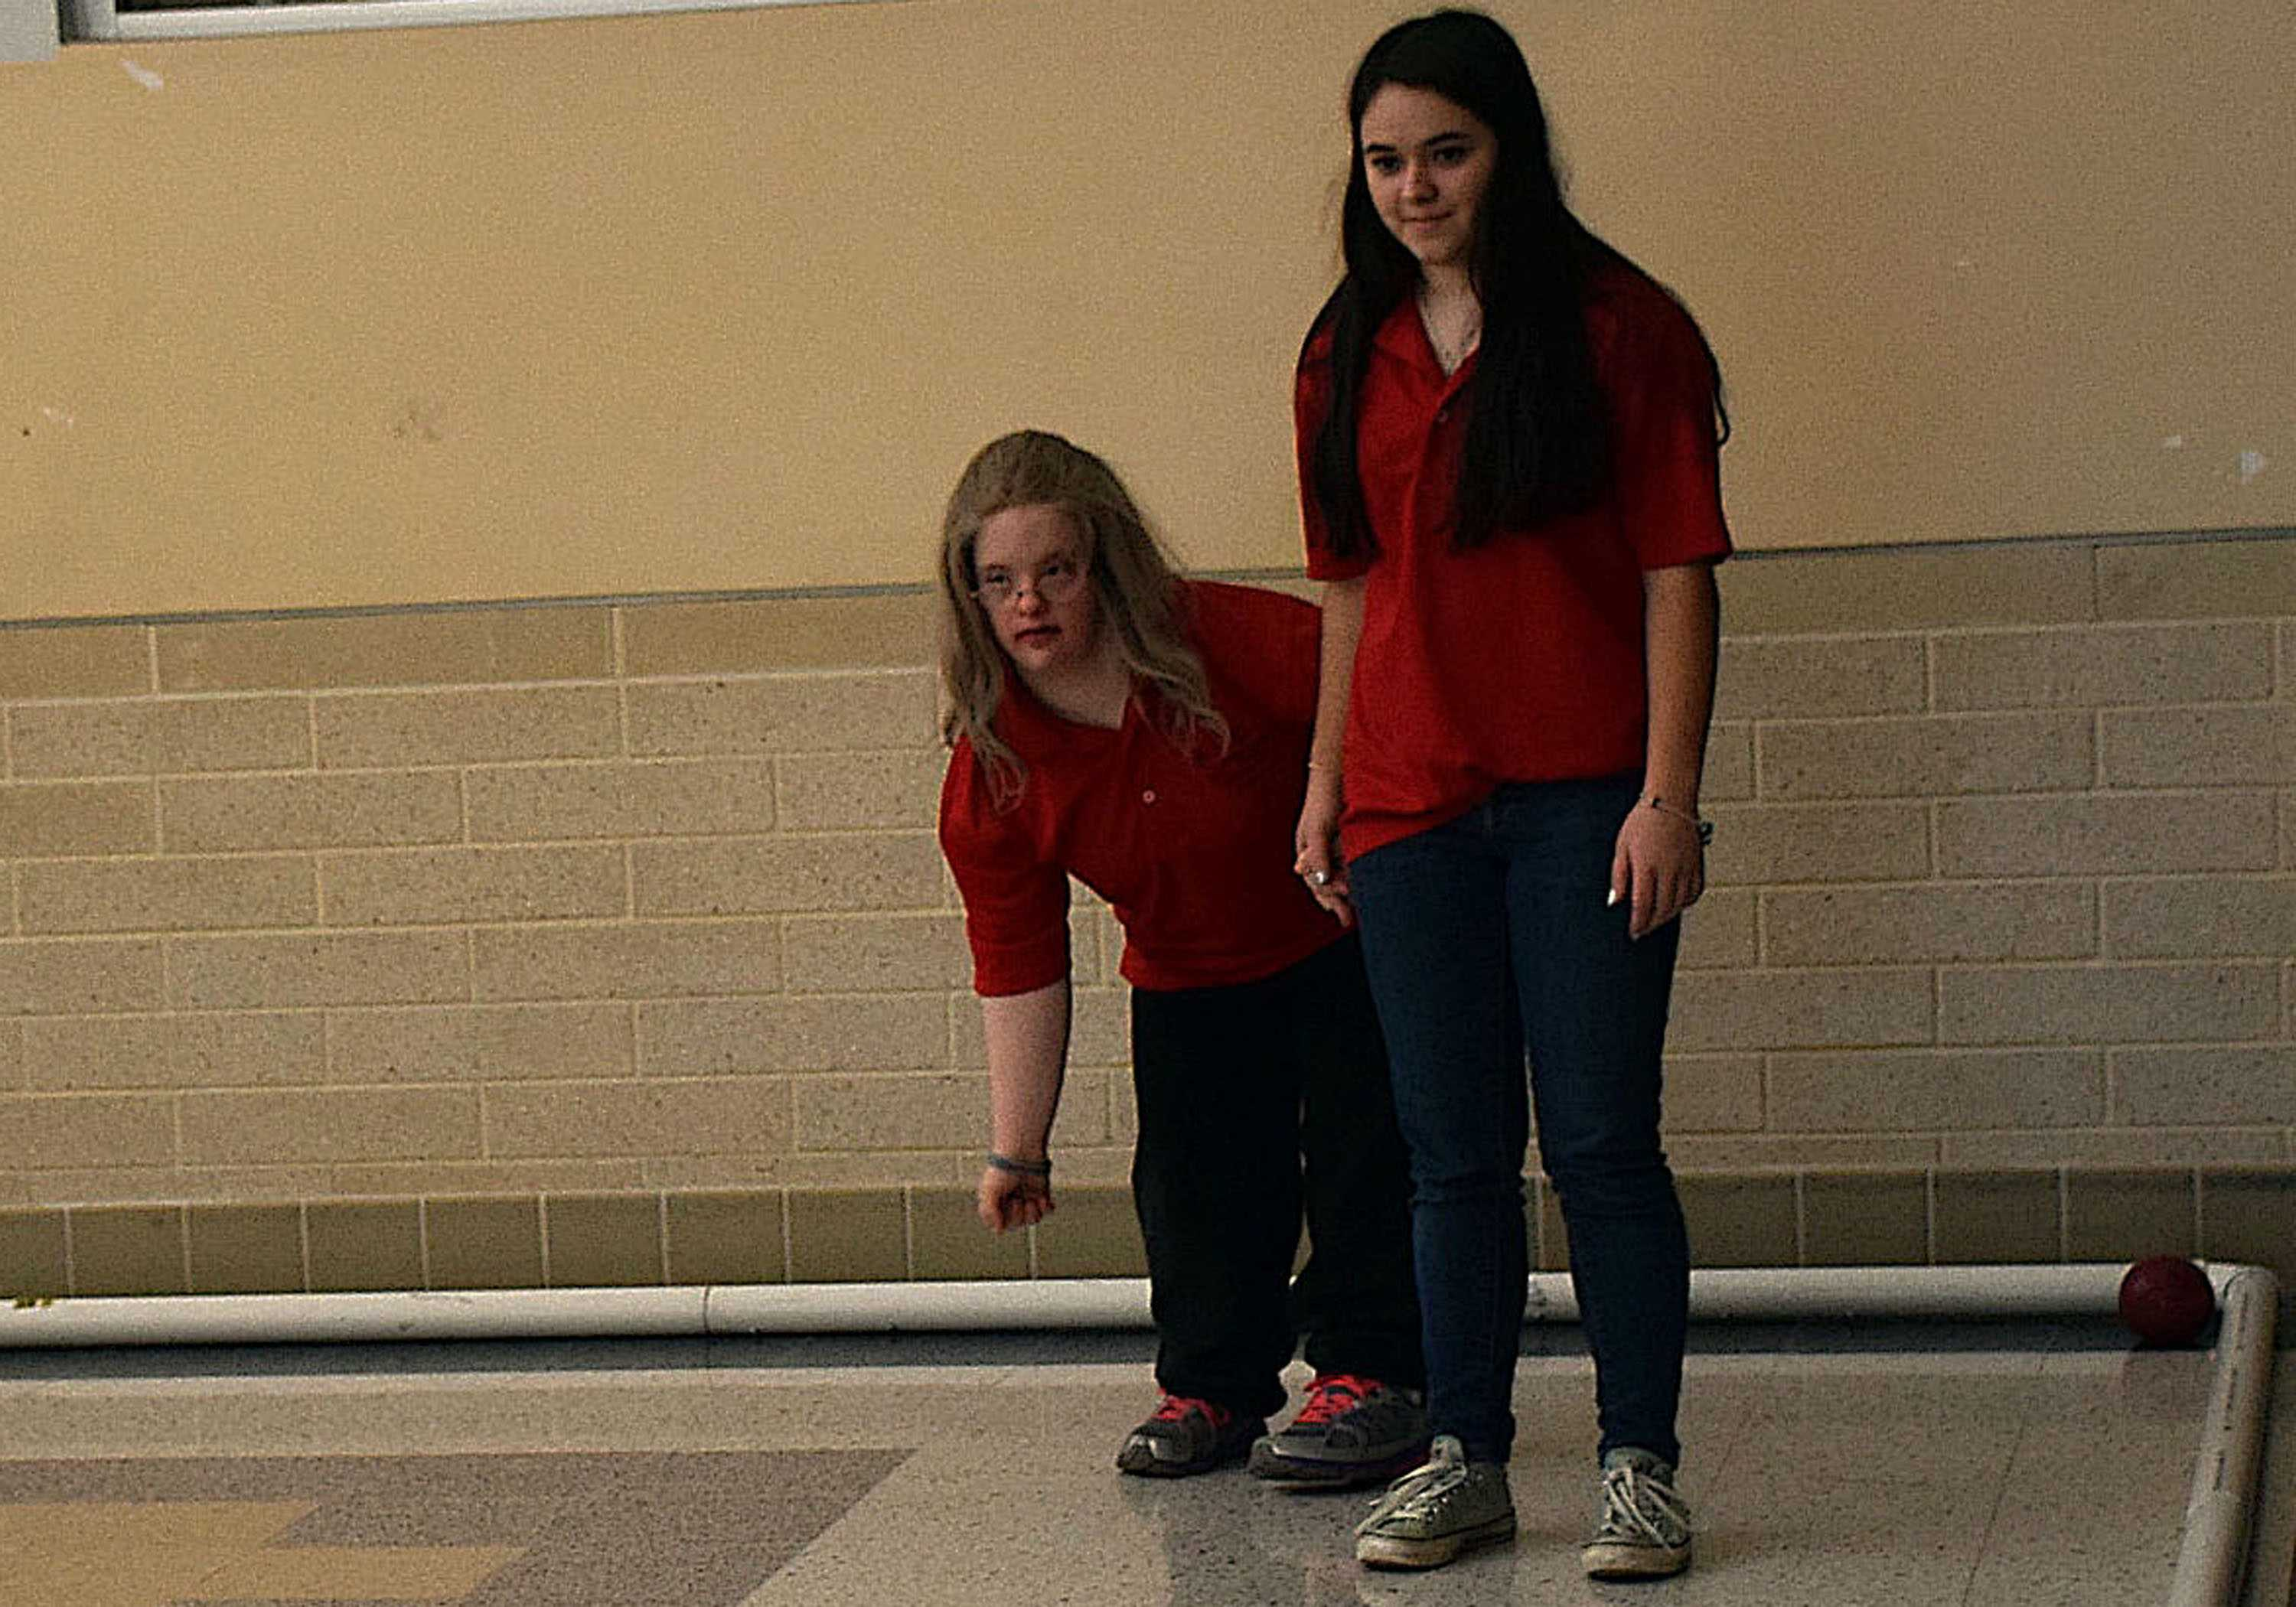 Michelle Weddle (right) helps Sarah Webber (left) throw the bocce ball at their match against Oakdale.